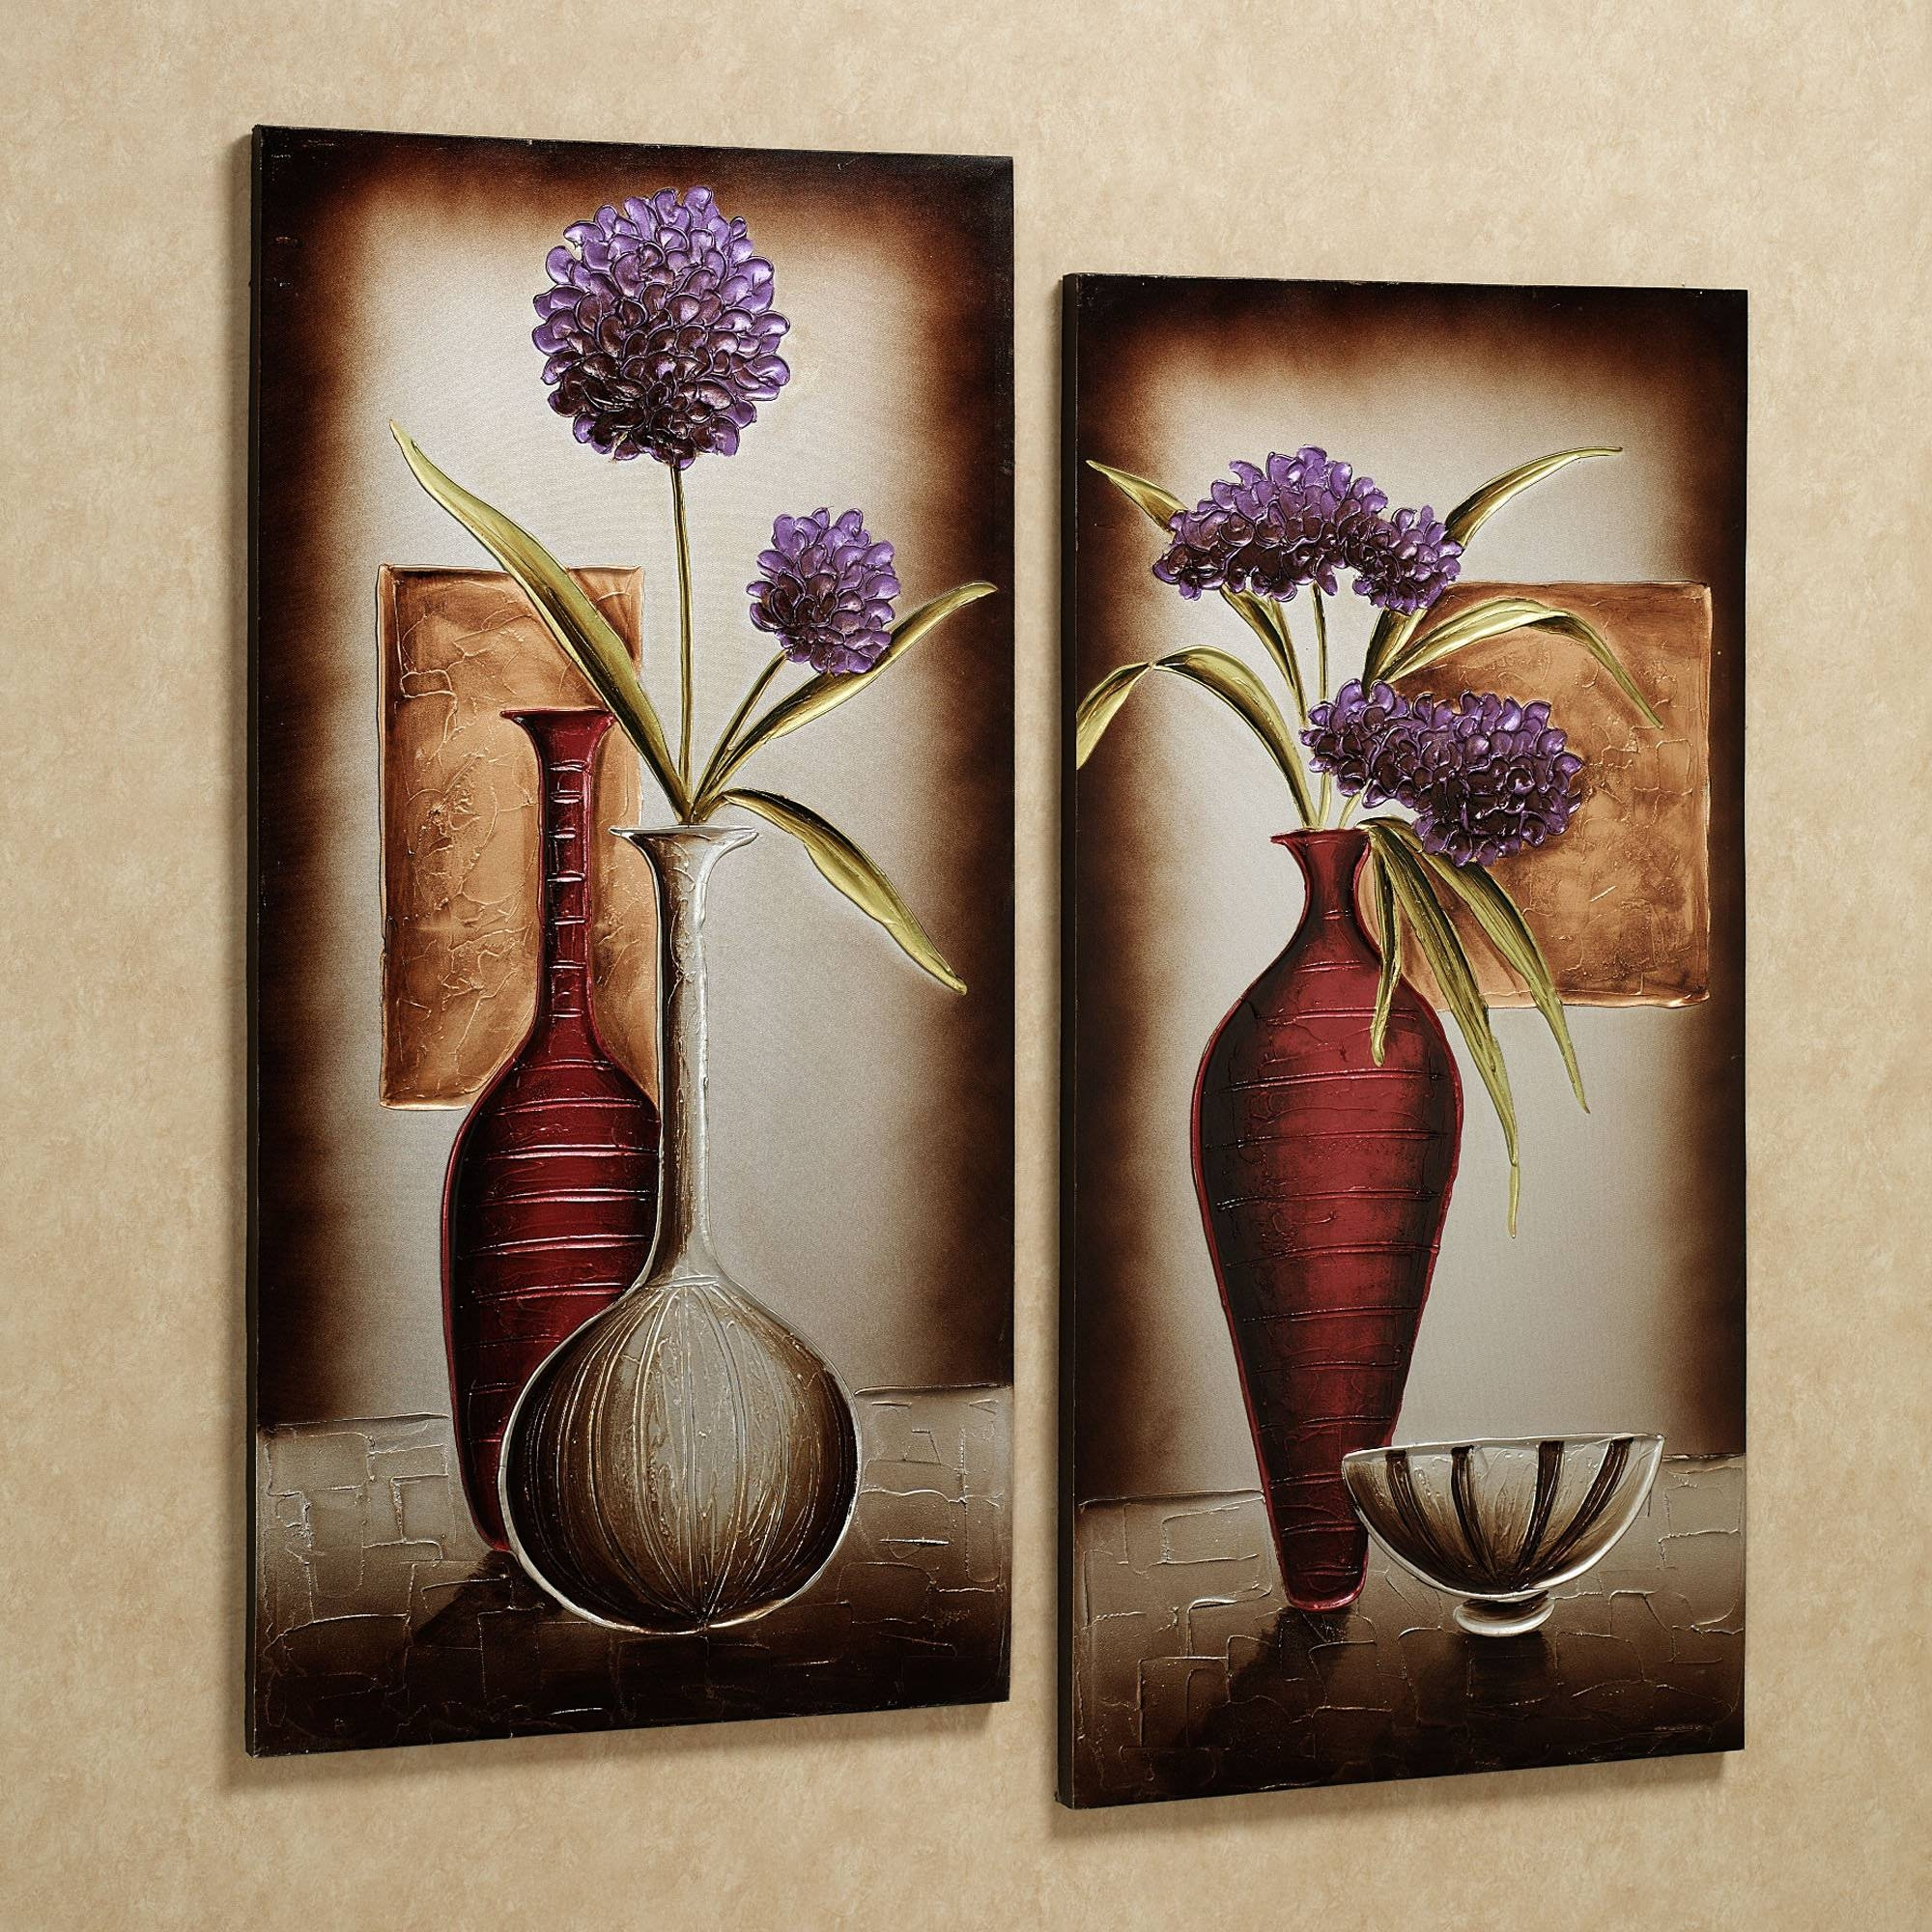 Decor: Amusing Canvas Wall Art Sets Of 3 On Copper Metal Art For Wall Pertaining To Most Recent Canvas Wall Art Sets Of  (View 11 of 25)